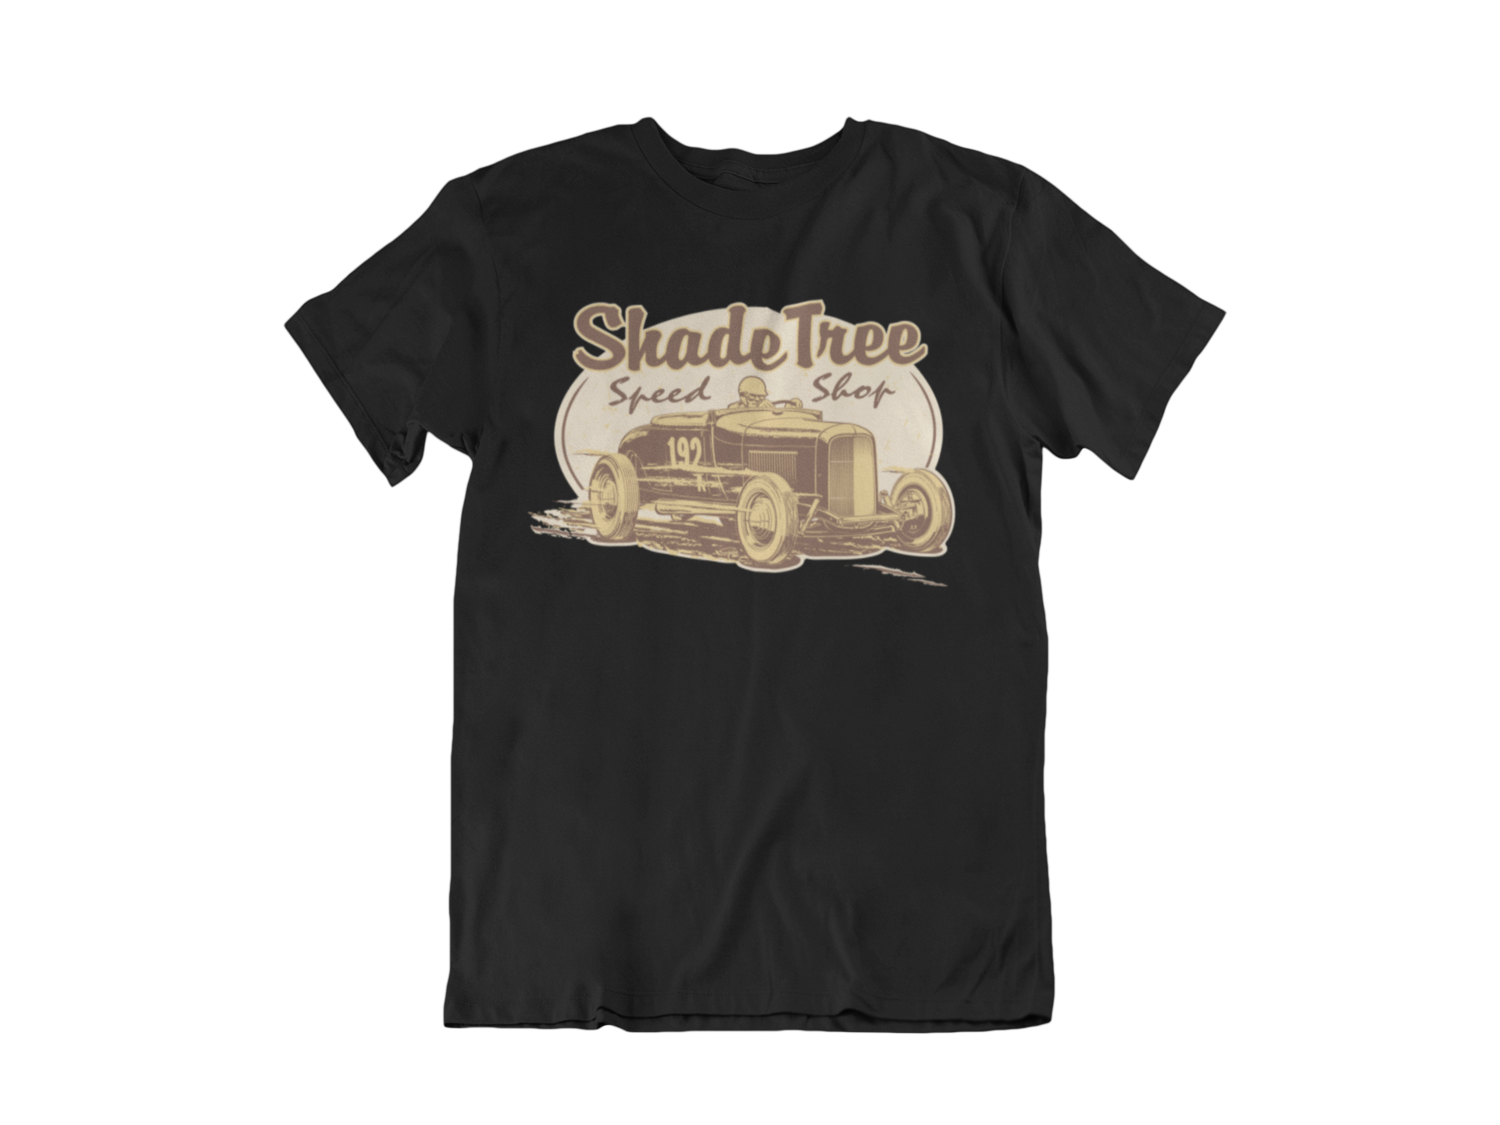 "SHADE TREE SPEED SHOP ""El Mirage"" T-SHIRT MAN BY Ger ""Dutch Courage"" Peters artwork"